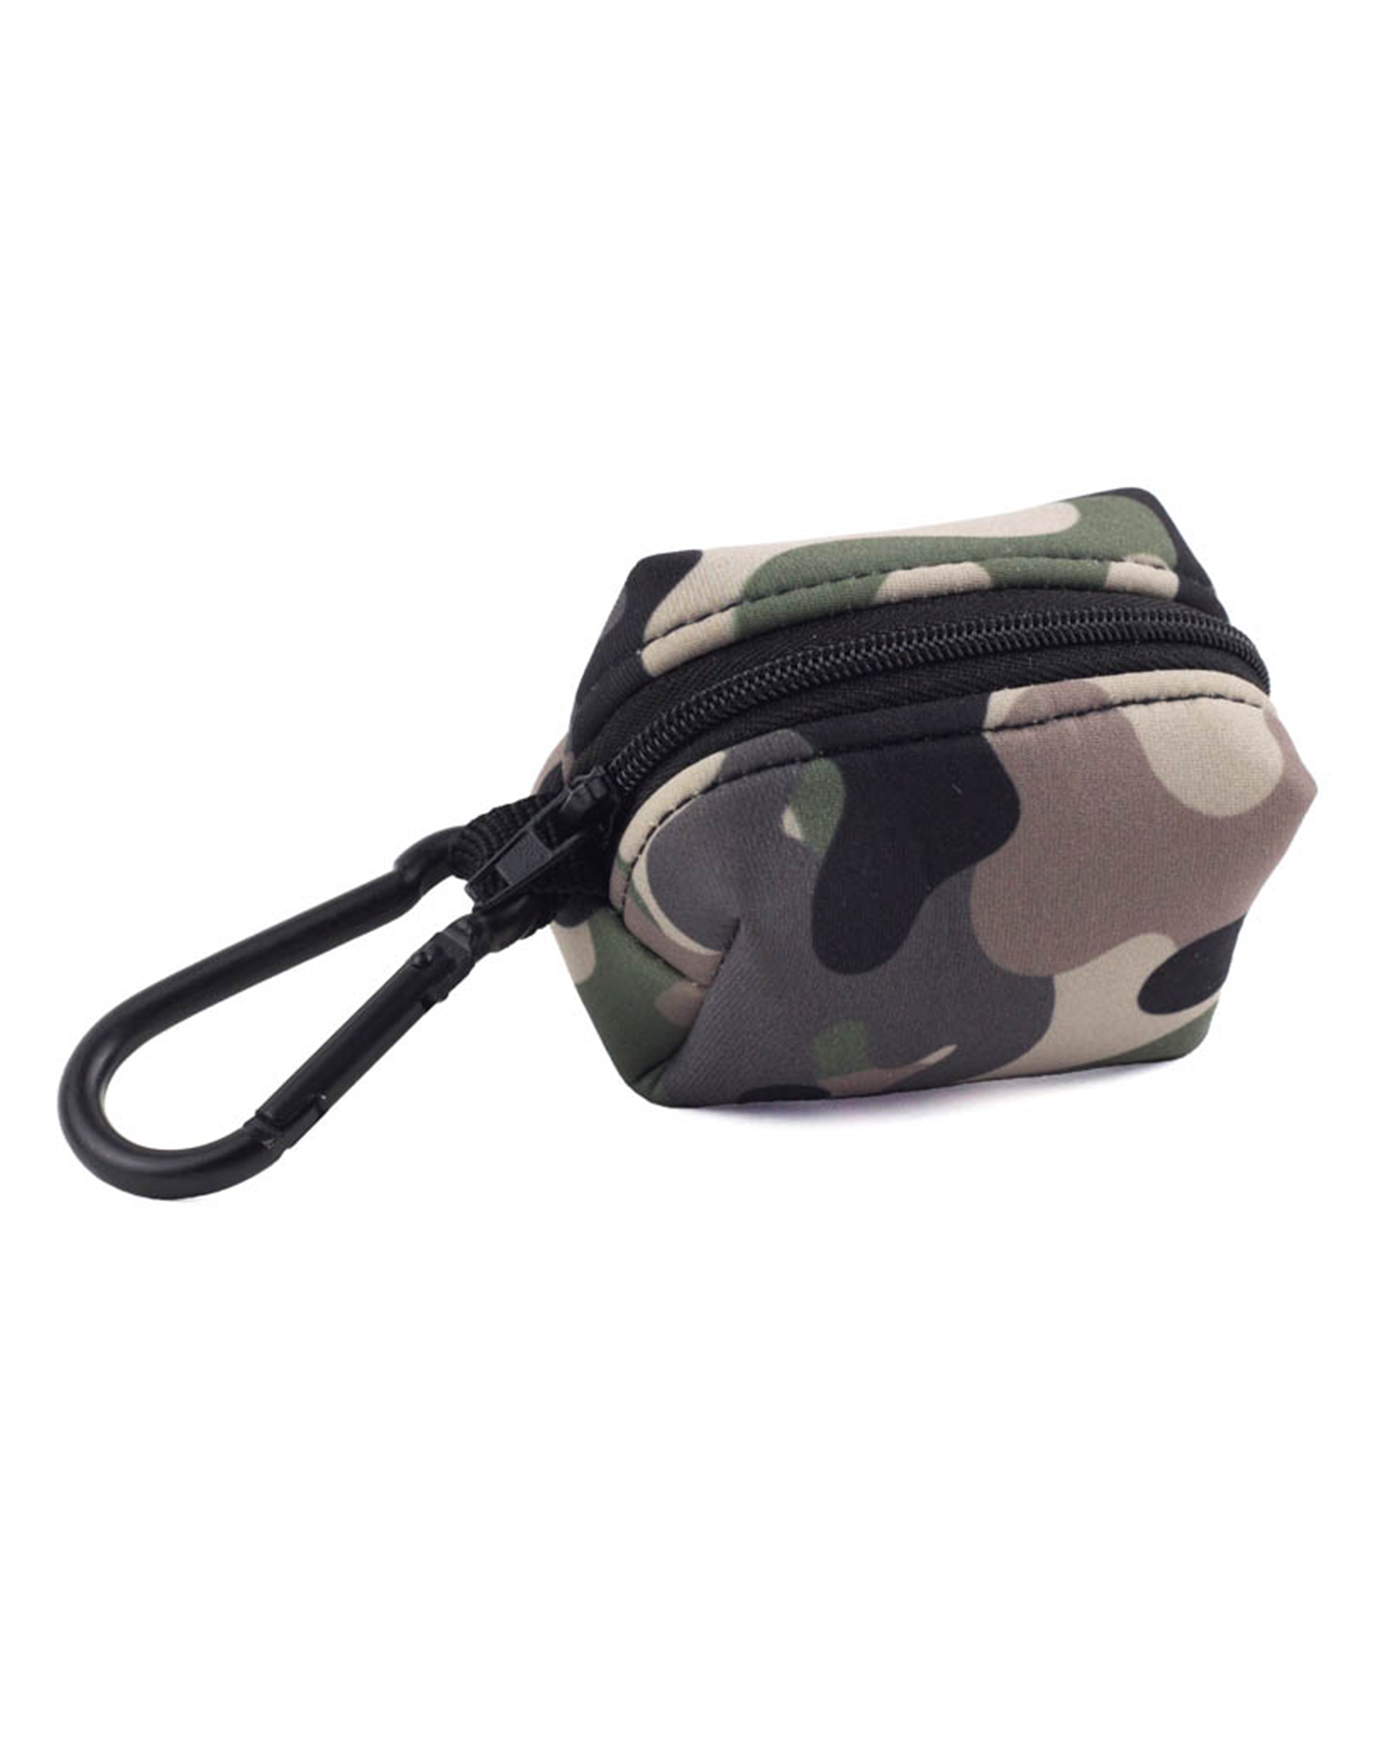 Oink Pet Supply Dog Poop Bag Holder - Toughen Up